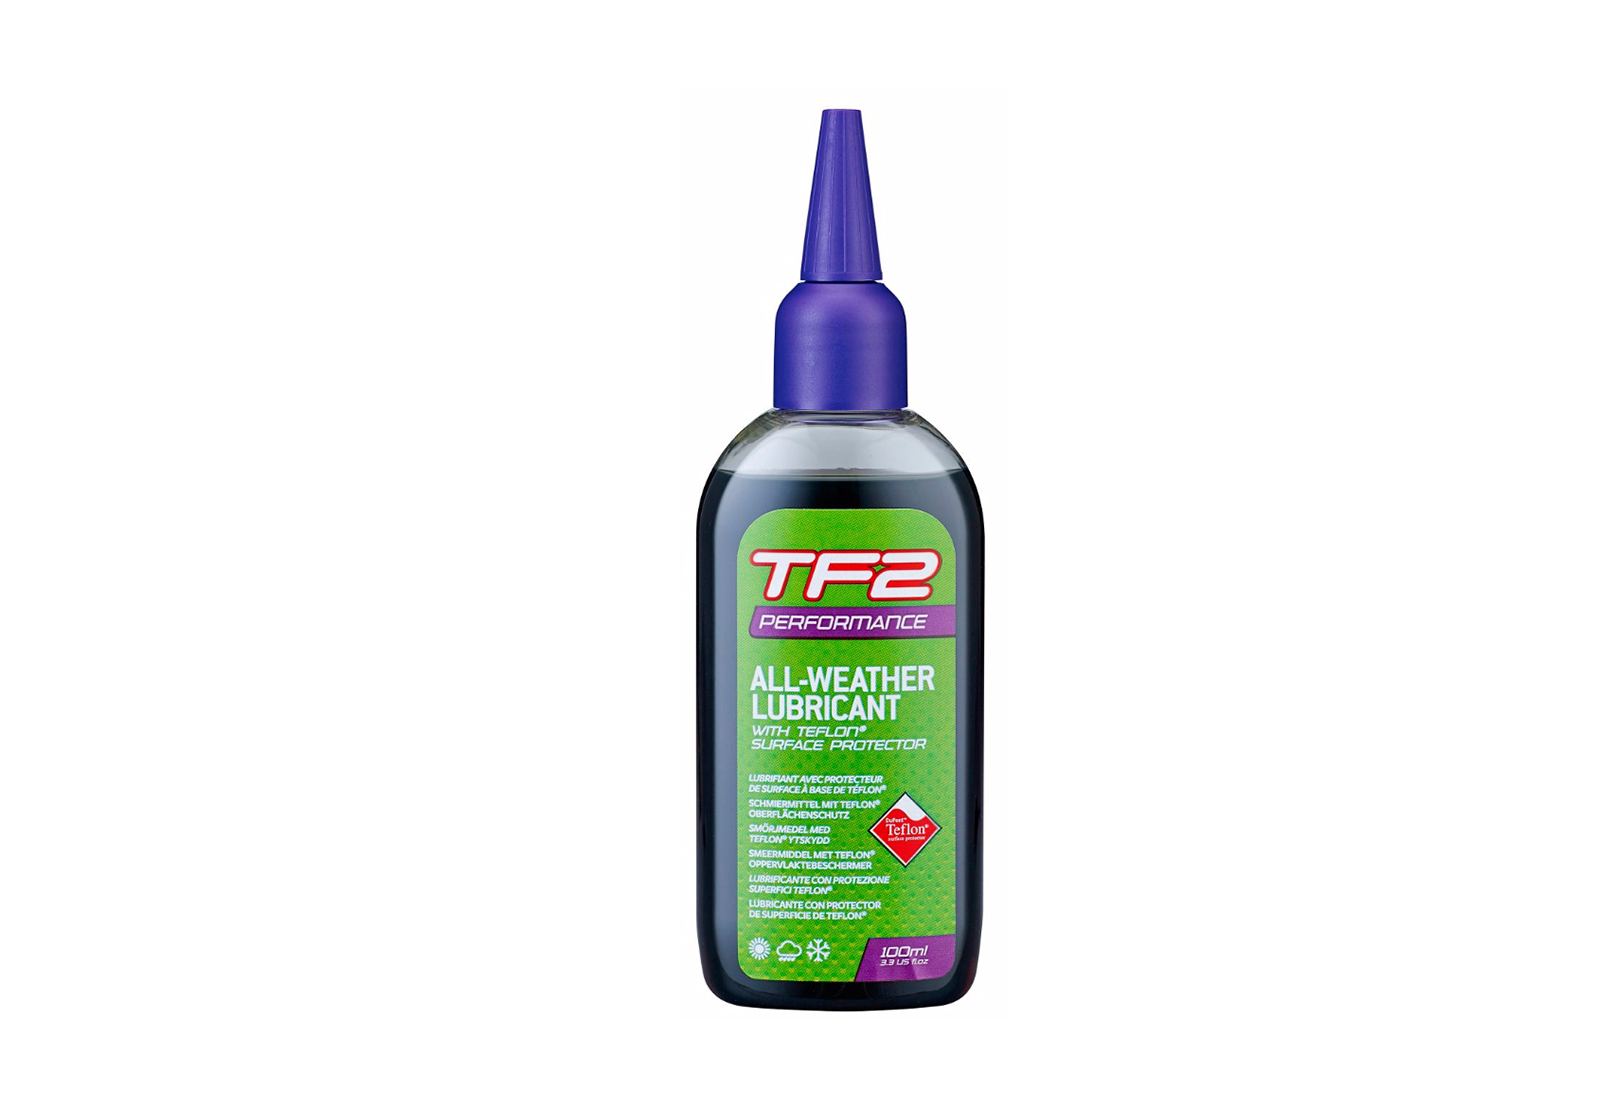 ULJE ZA LANAC WELDTITE ALL WEATHER TEFLON TF2 PERFORMANCE 100ml 03047